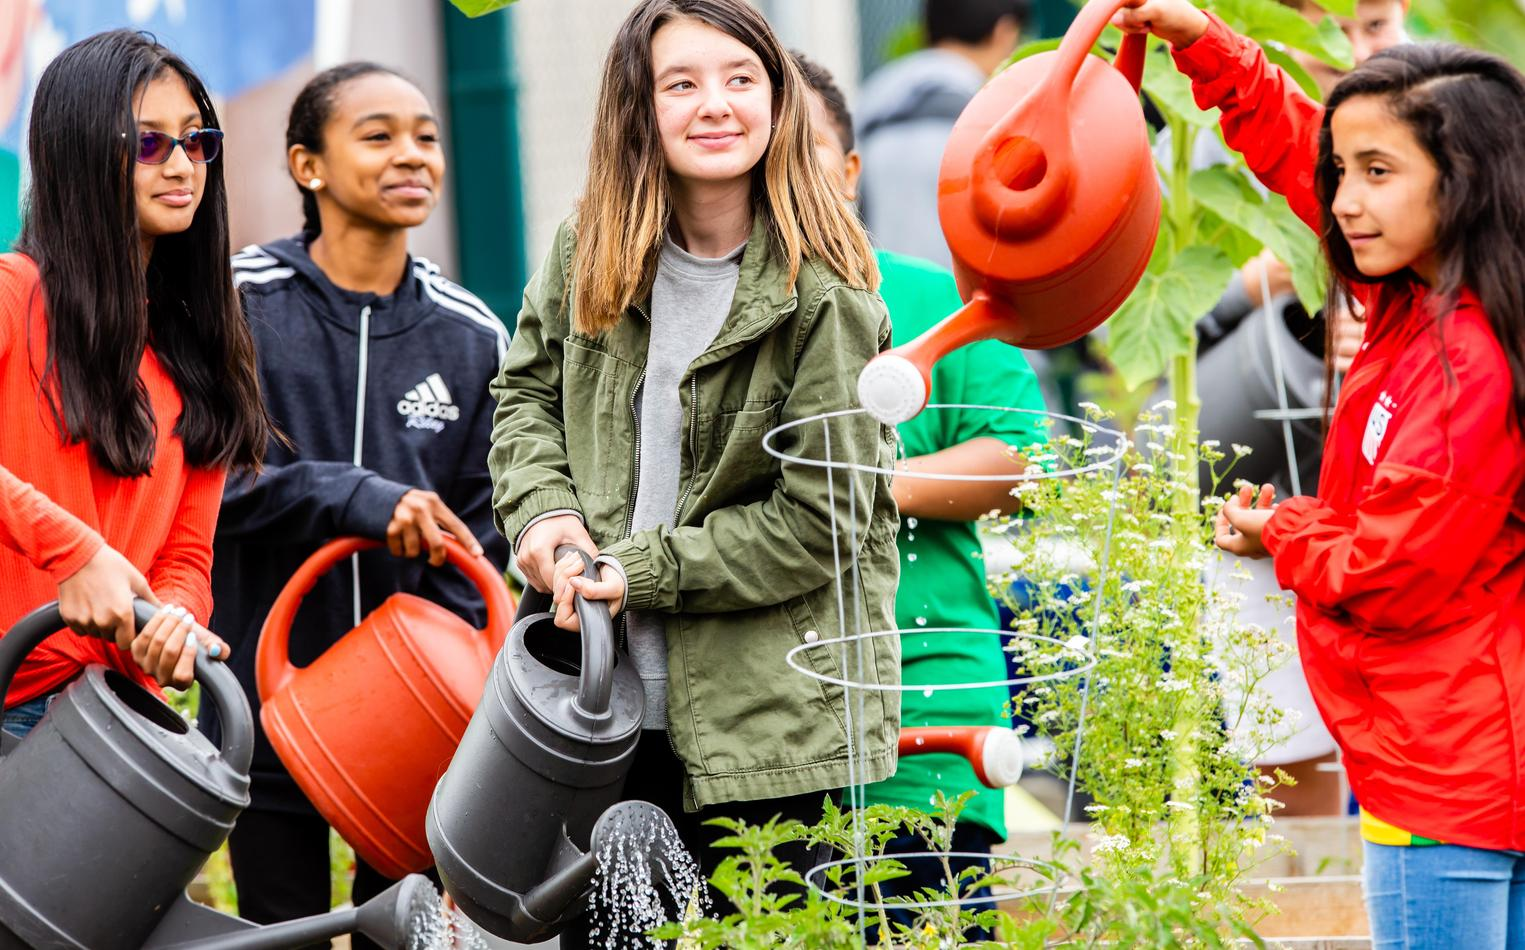 A group of students water plants during their outdoor class.